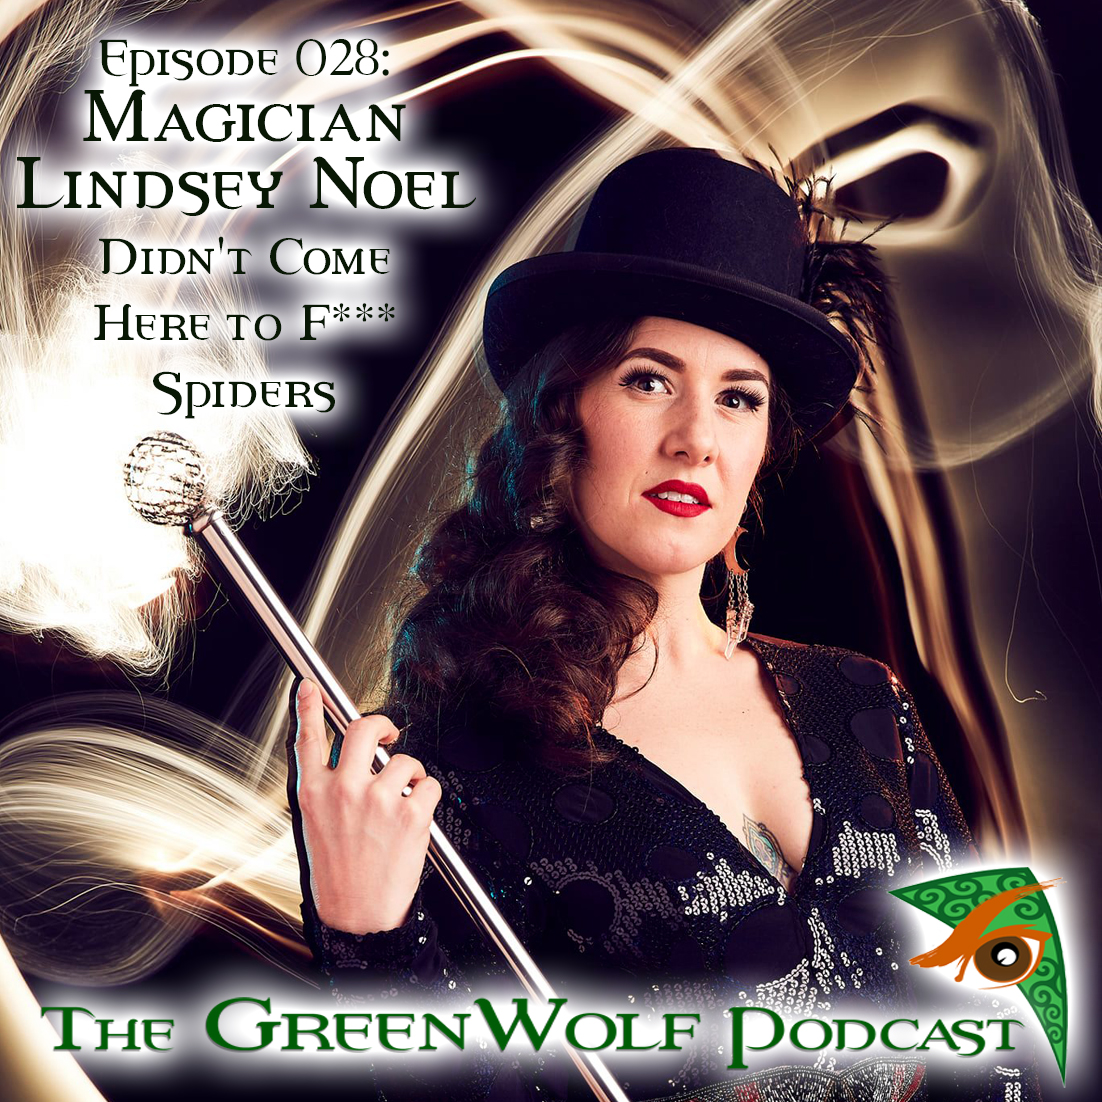 The GreenWolf Podcast - Ep 028- Magician Lindsey Noel didn't Come Here to **** Spiders